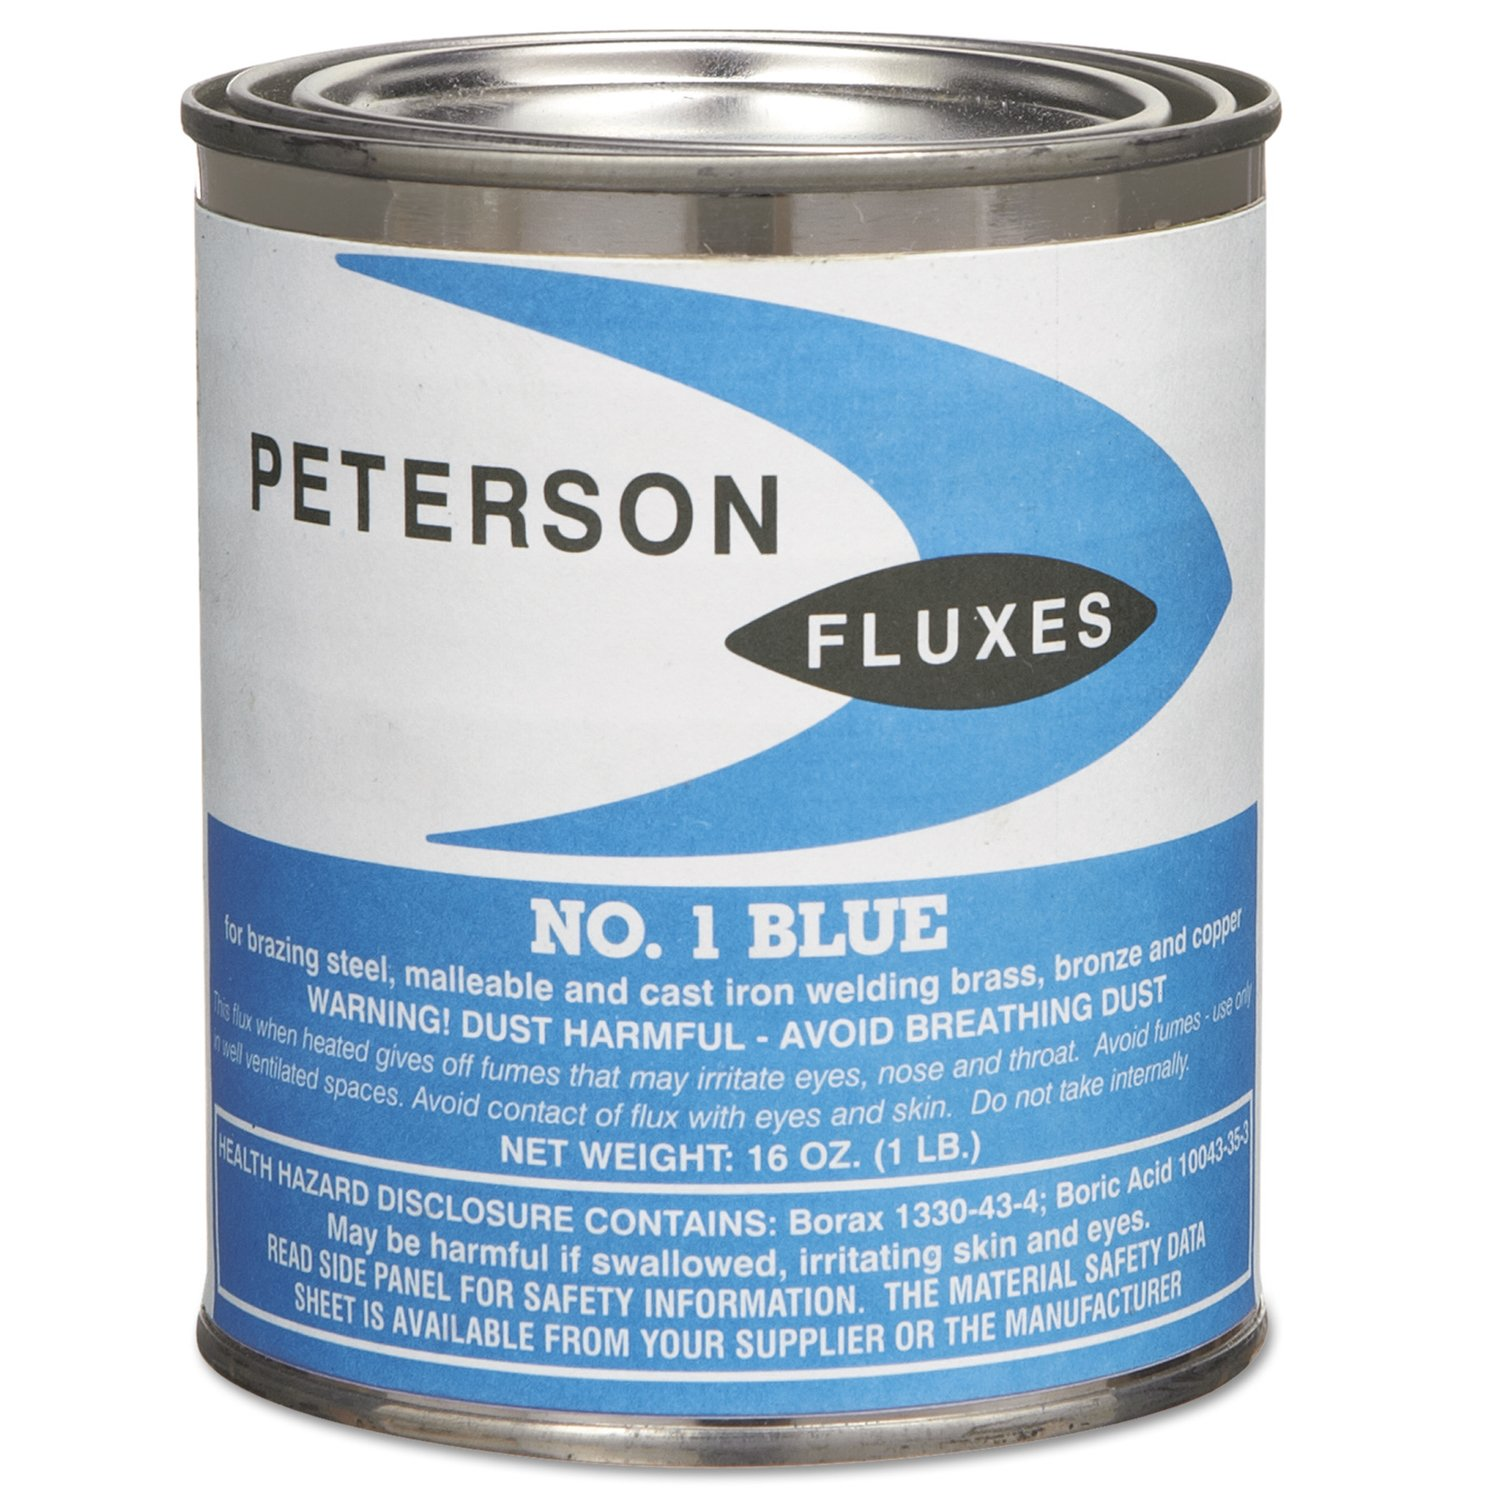 Peterson Fluxes 1 Fluxes, Powder, 1 lb. Jar, Blue Flux